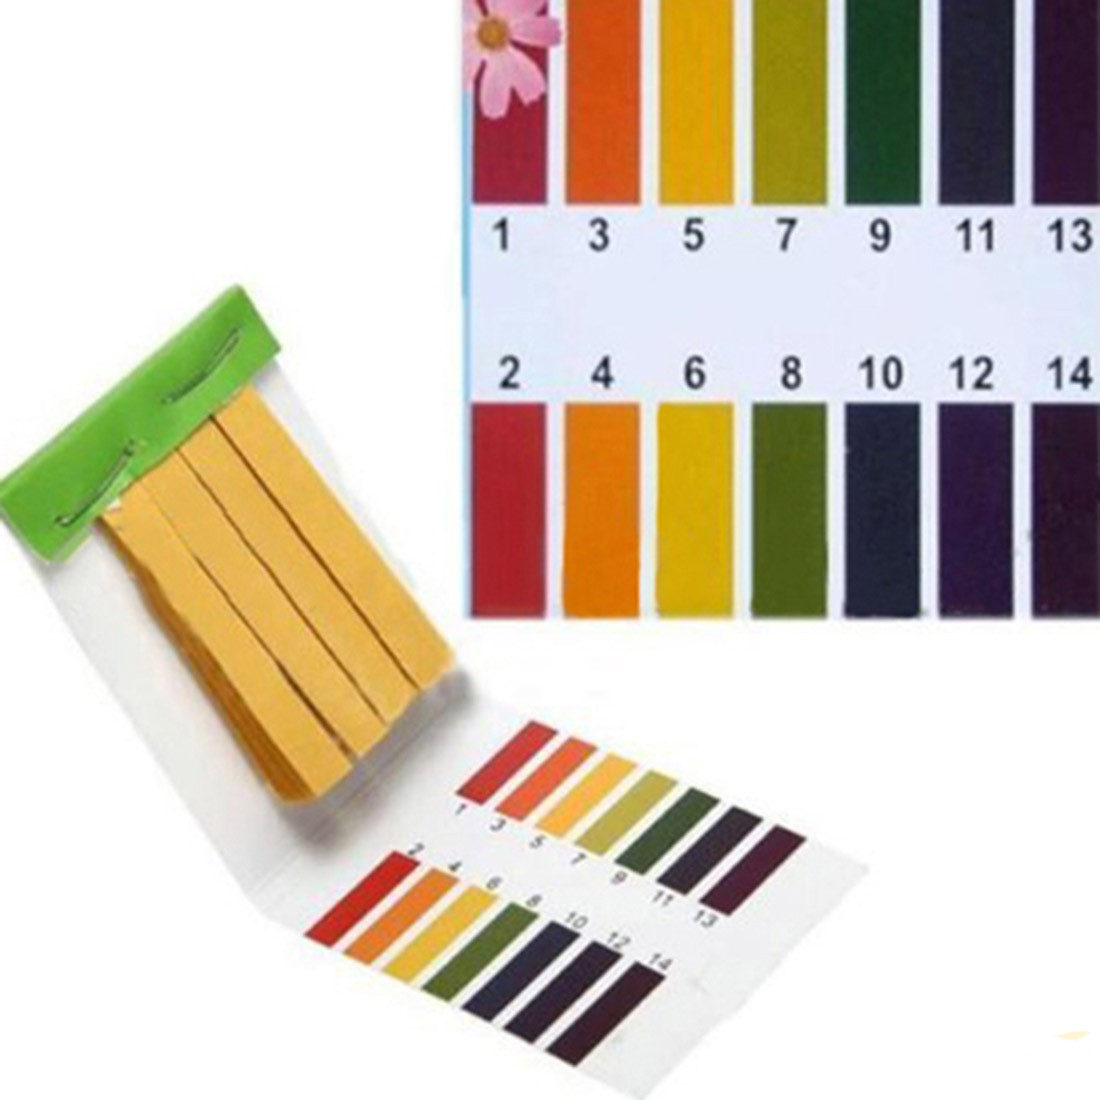 PH Litmus Paper 80 Strips PH Test Strip Aquarium Pond Water Testing Full Range Alkaline Acid 1-14 Test Paper Litmus Test gottlieb basic electronic test procedures 2ed paper only